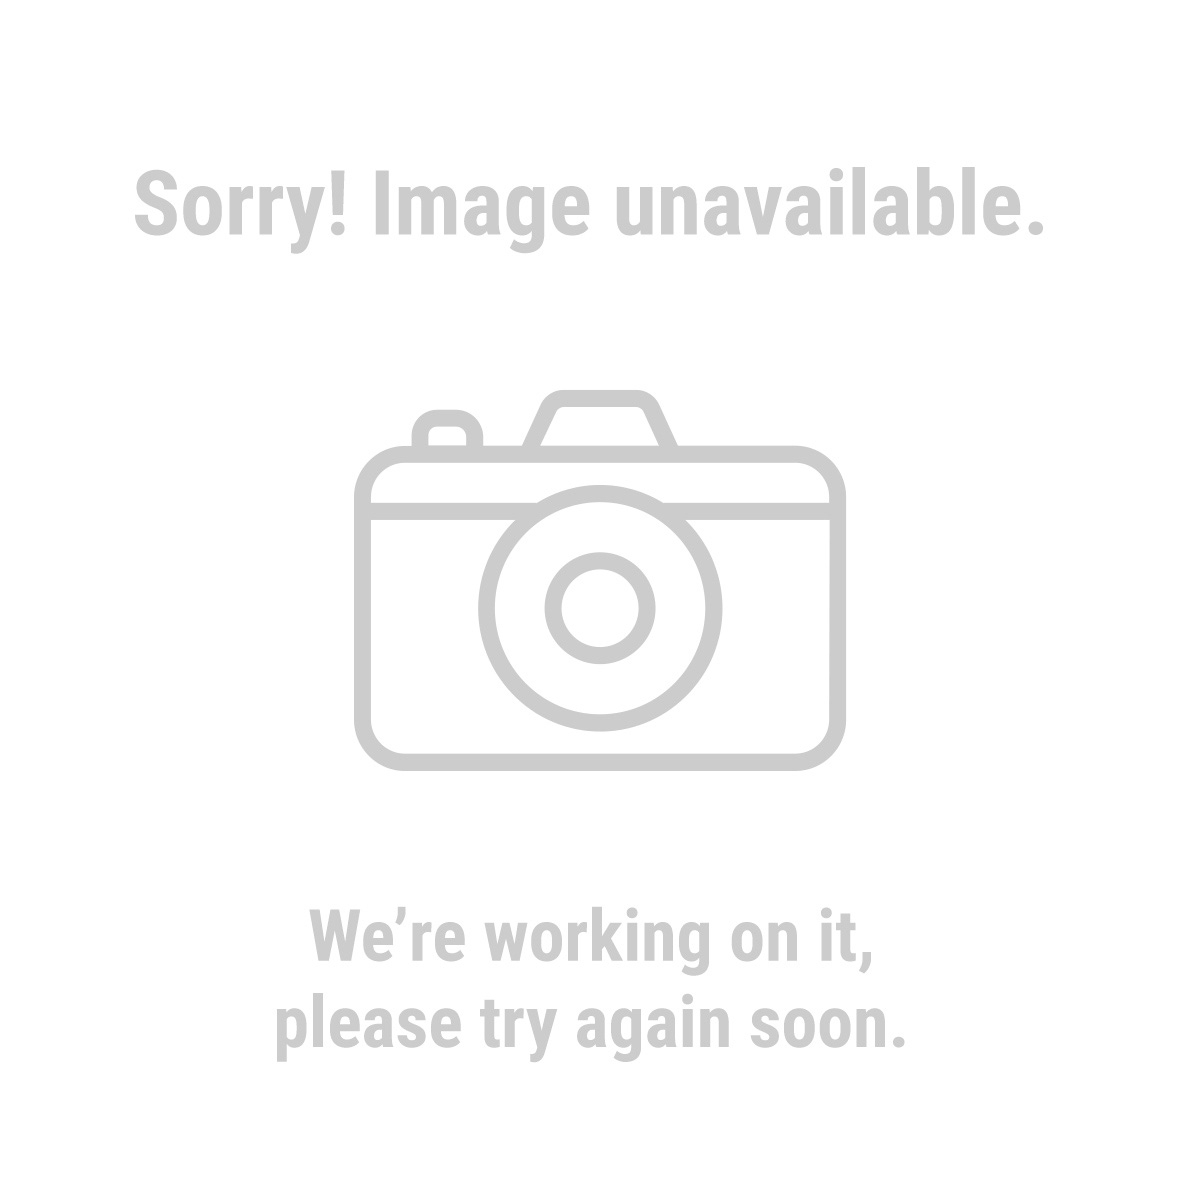 Pittsburgh® Automotive 66481 20 Ton Low Profile Hydraulic Bottle Jack